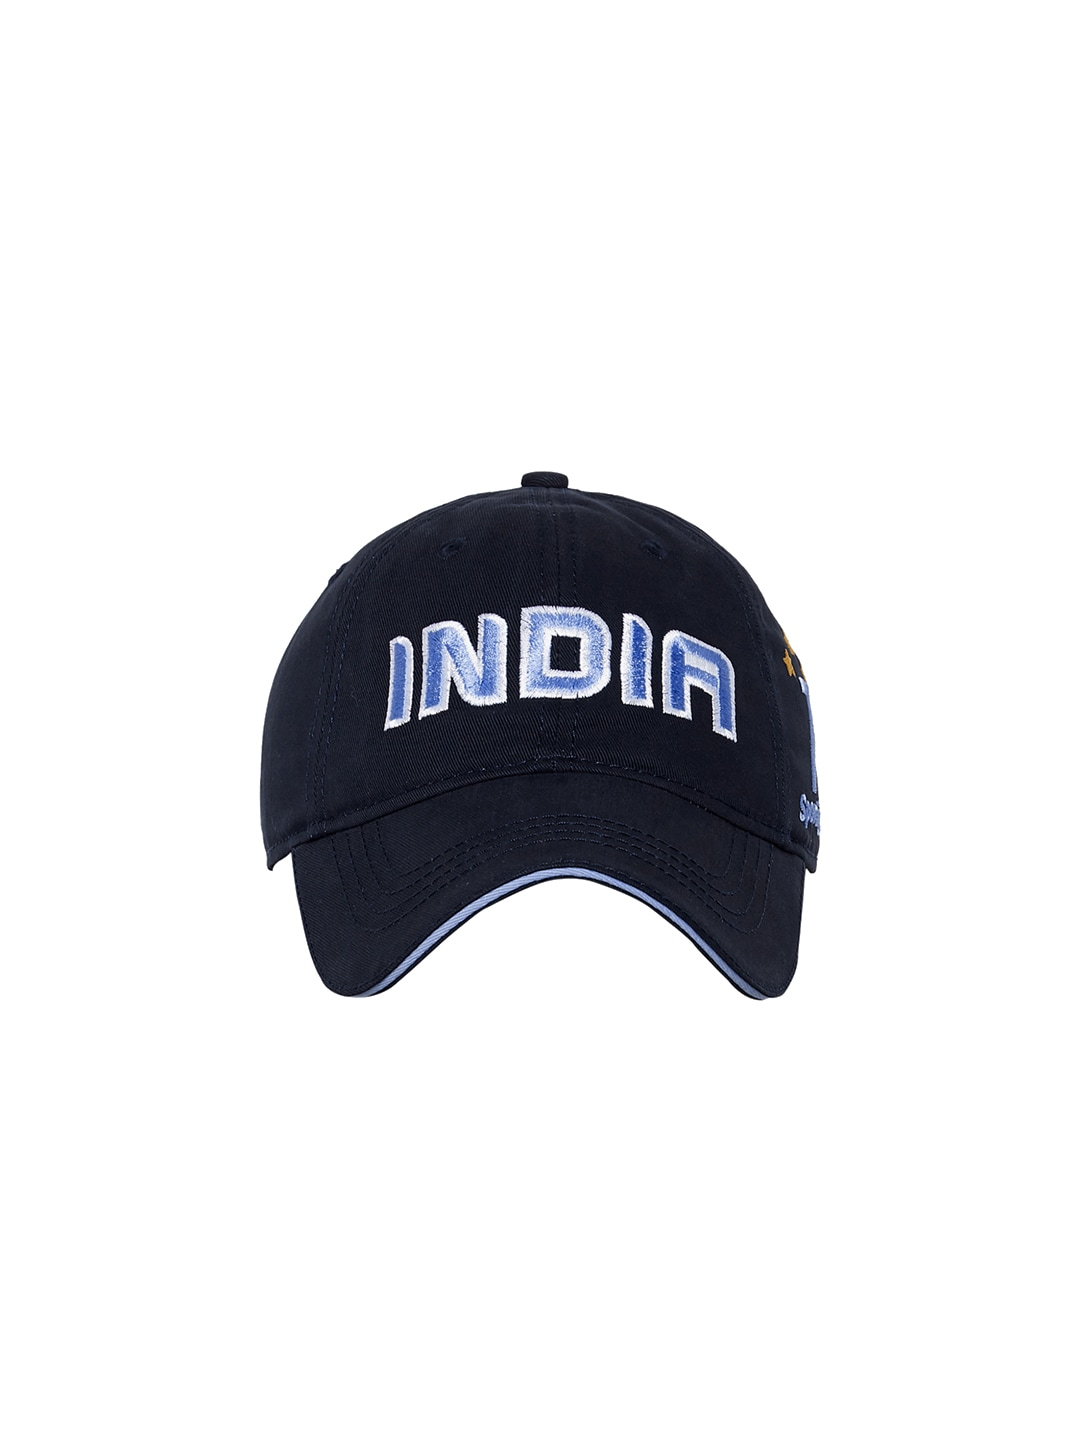 2dd05be11bf Caps   Mufflers For Men - Buy Caps   Mufflers For Men online in India